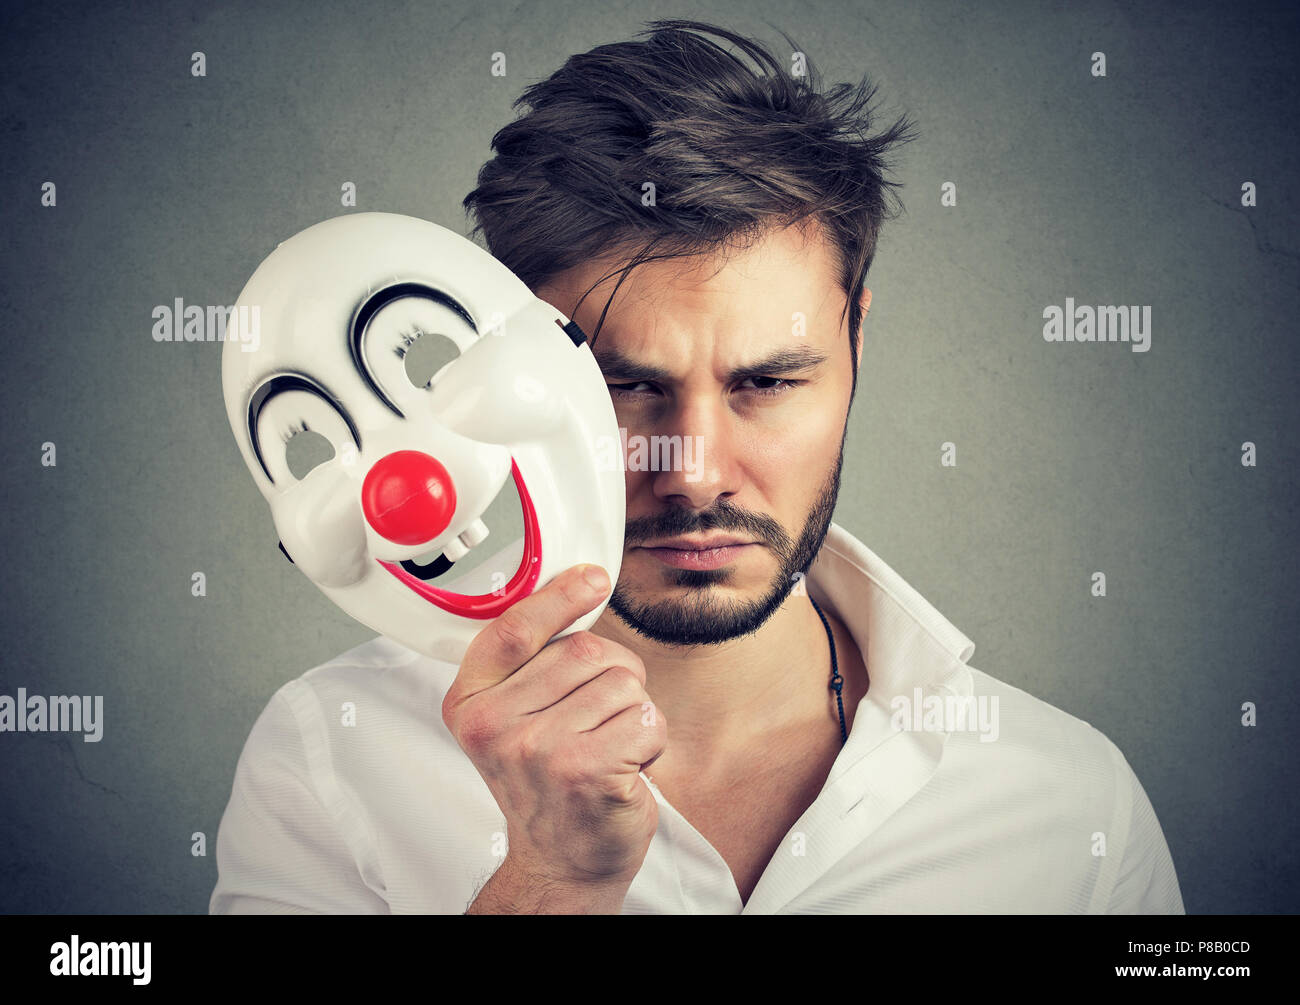 Young bearded man holding happy mask and feeling sad and gloomy while looking at camera on gray background - Stock Image